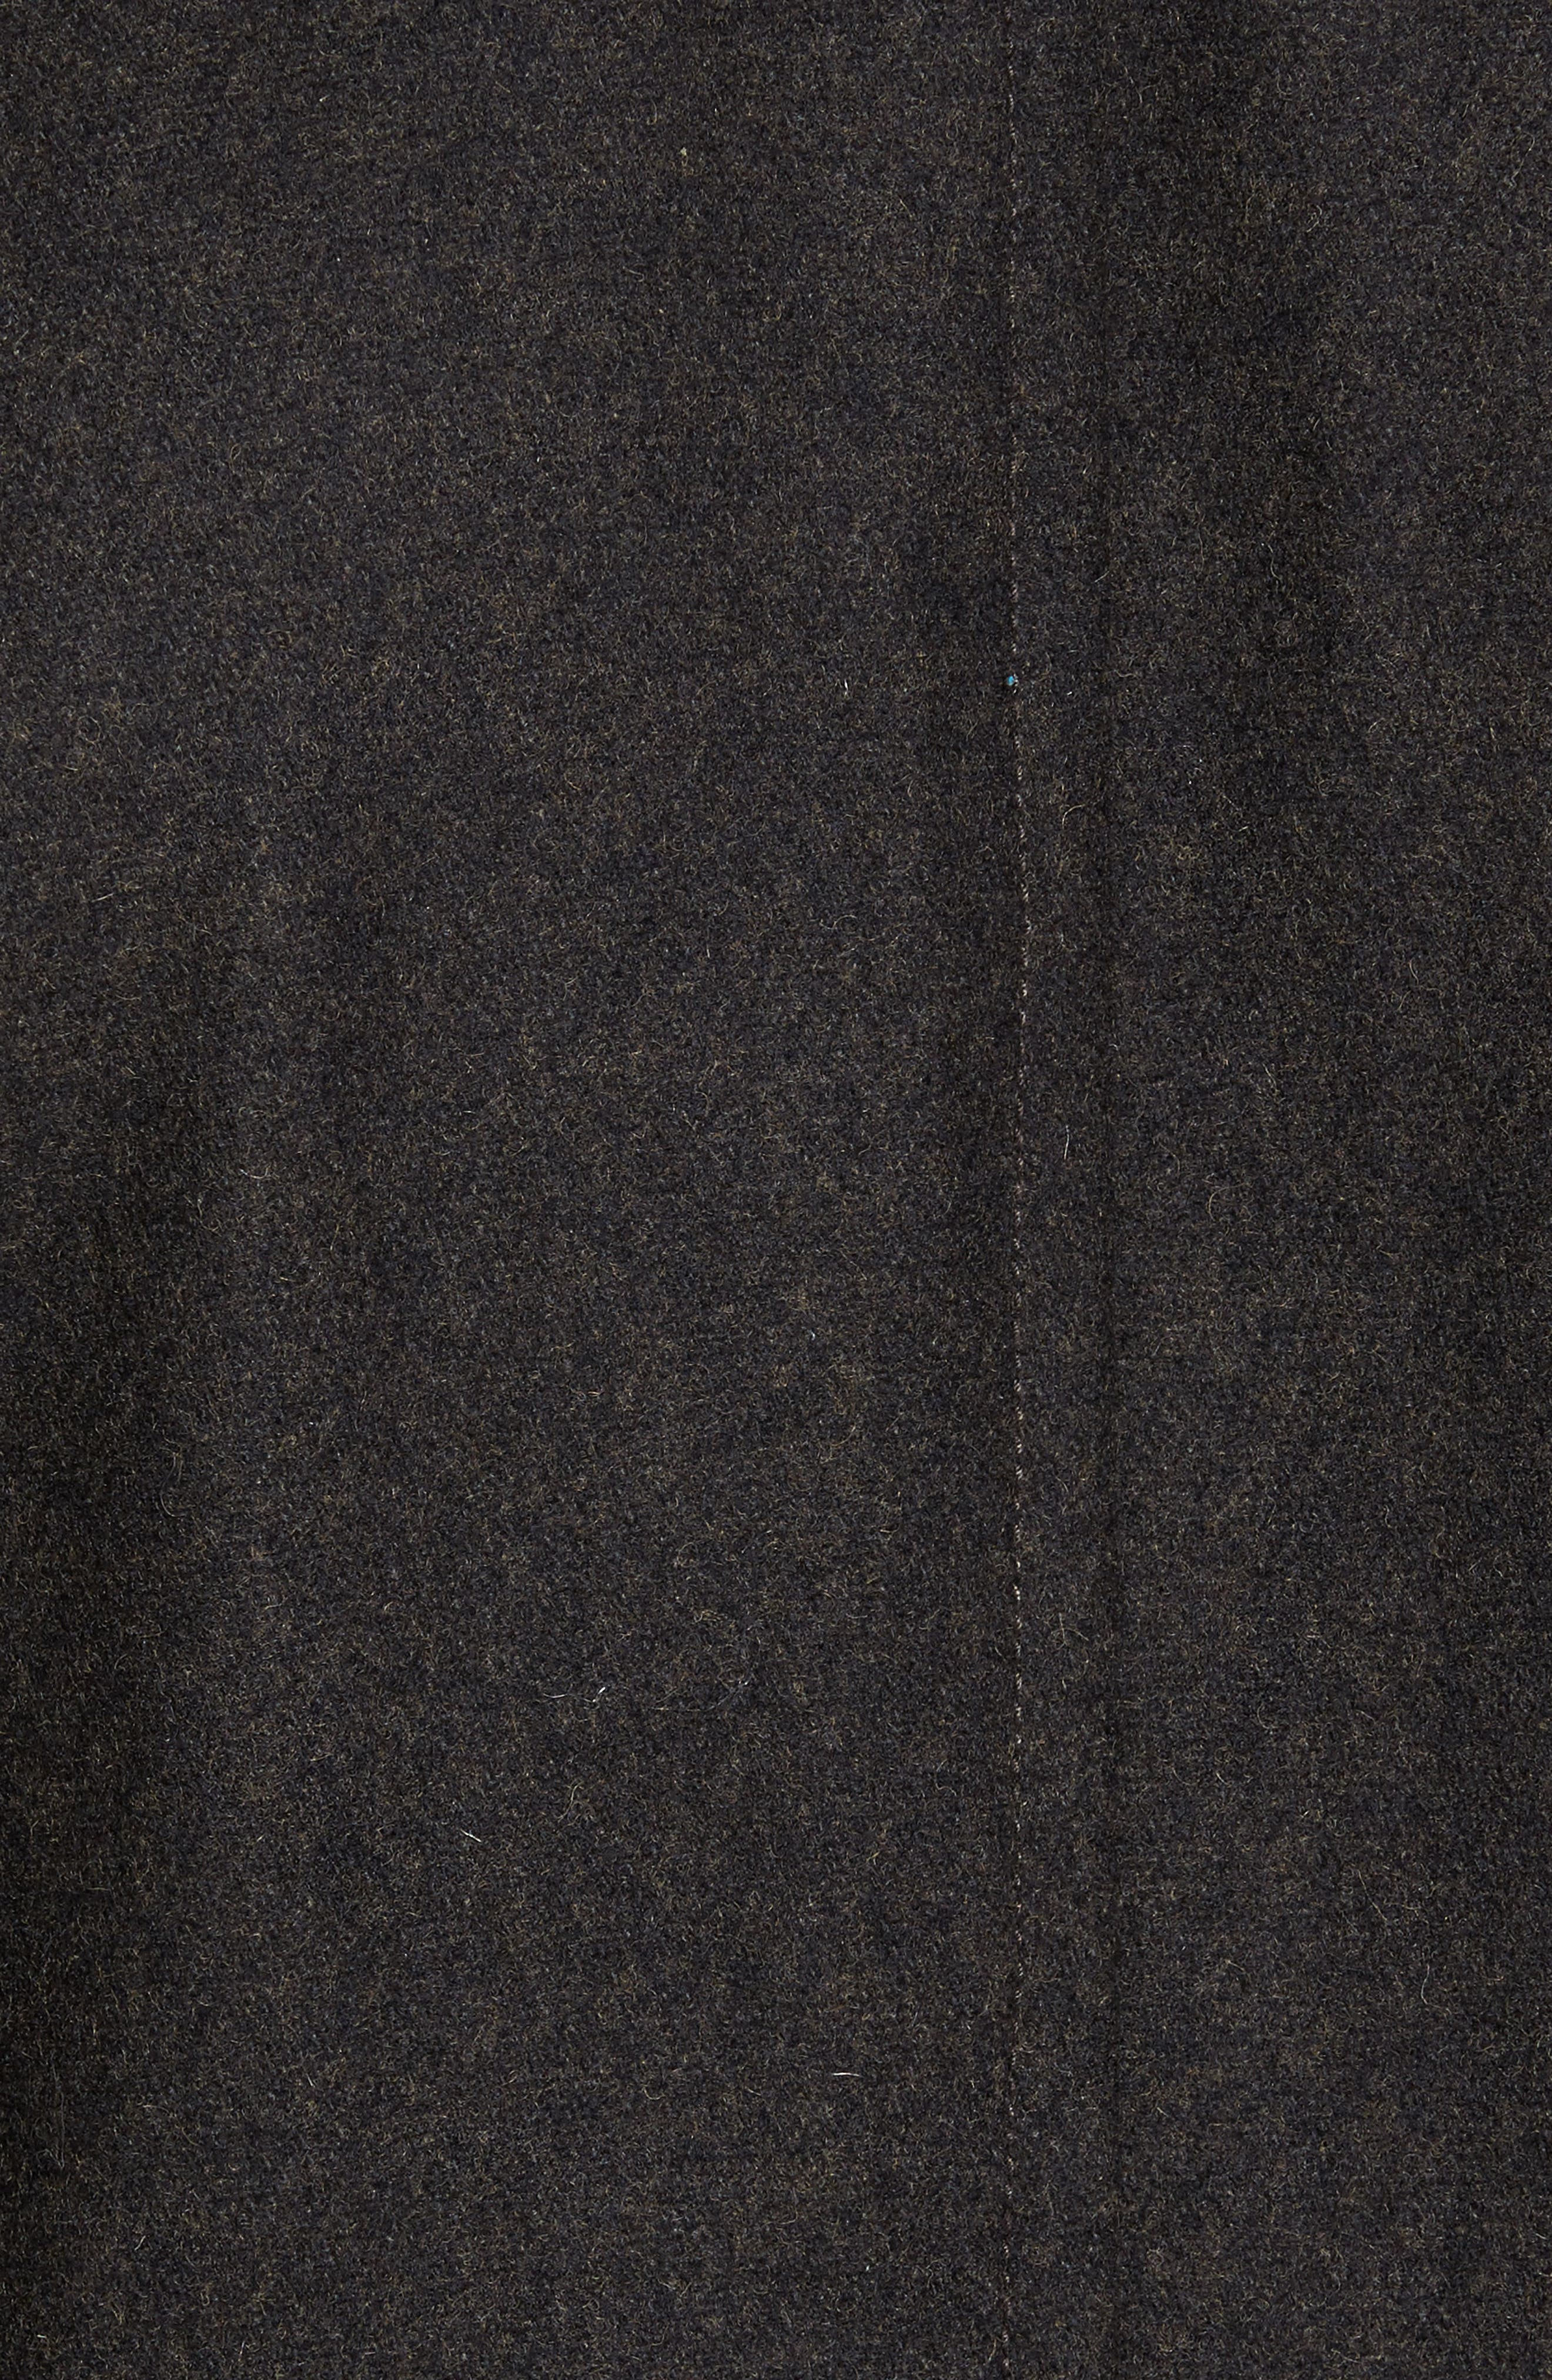 Wool Blend Peacoat,                             Alternate thumbnail 5, color,                             Loden Heather